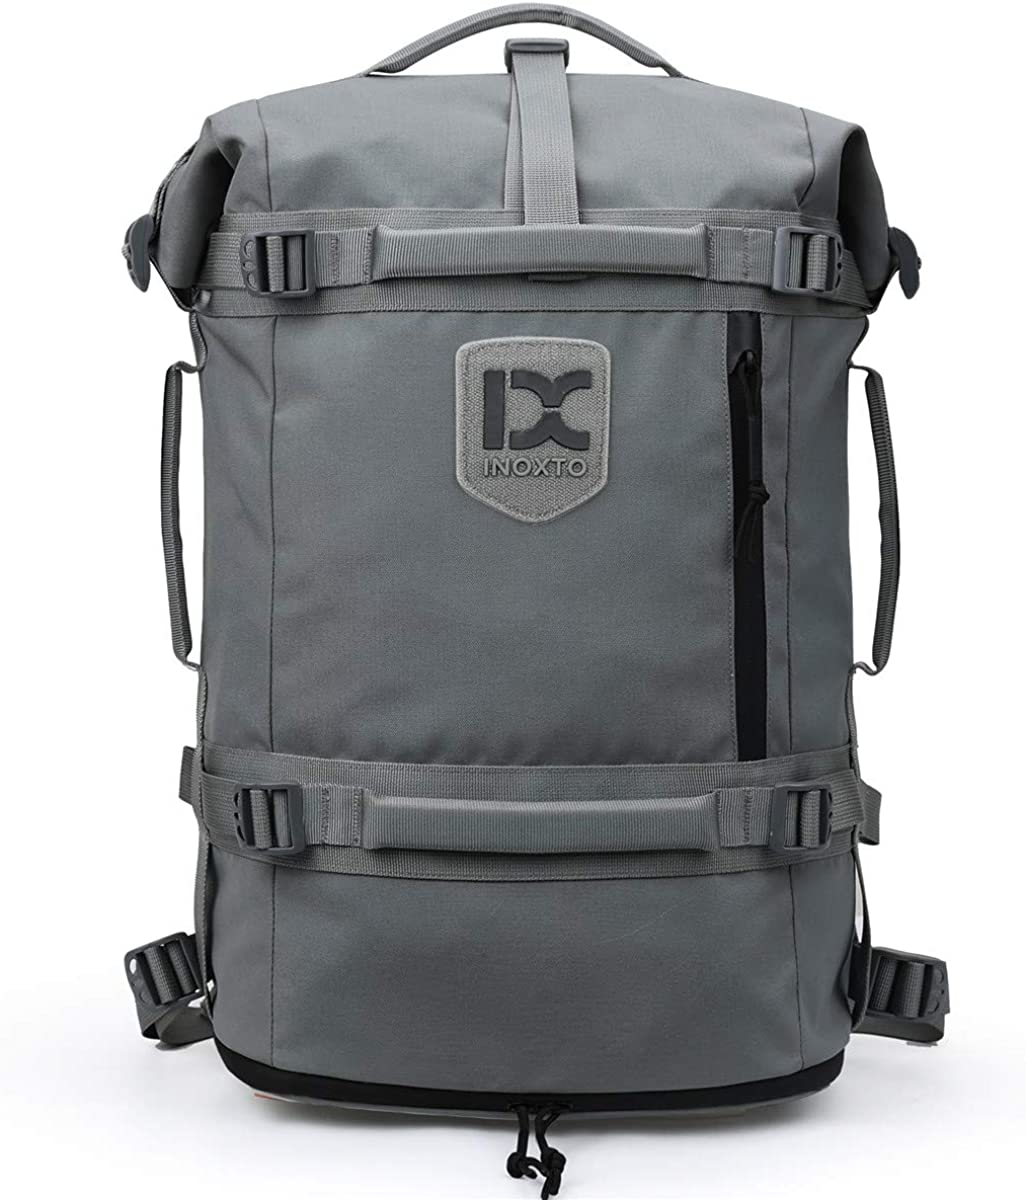 Wxnow Travel Duffel Backpack Outdoor Bag with Shoe Compartment Laptop Bag